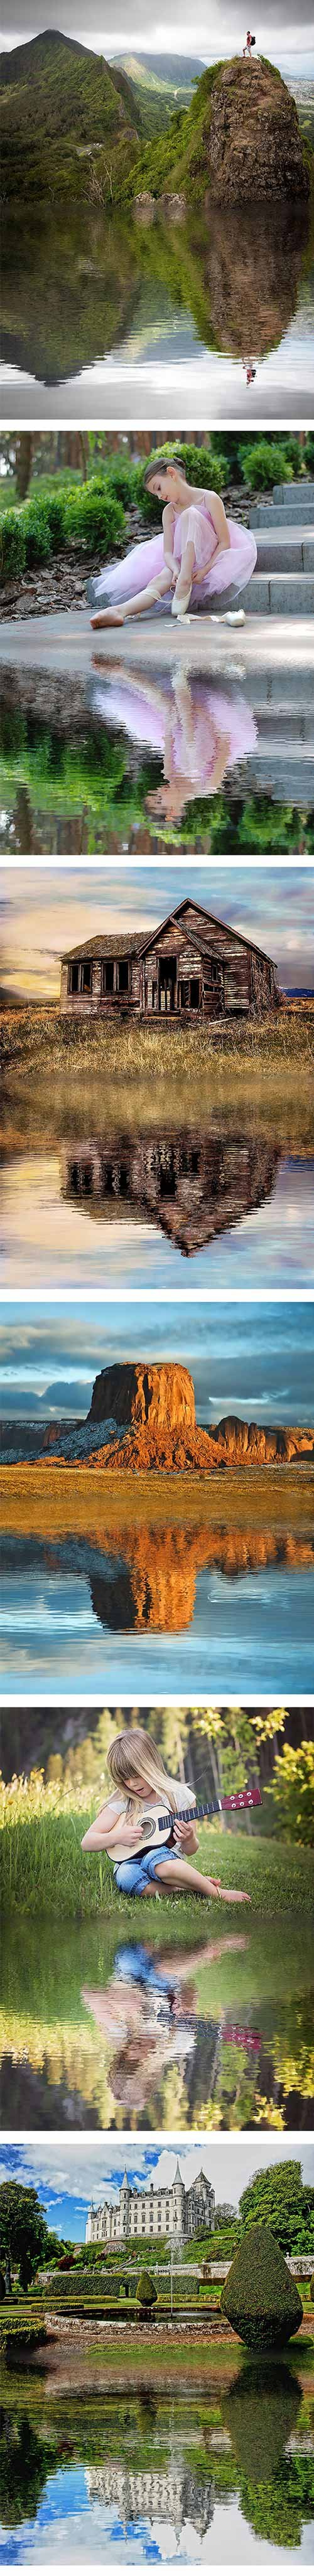 GraphicRiver - Water Reflection Photoshop Action 22367424